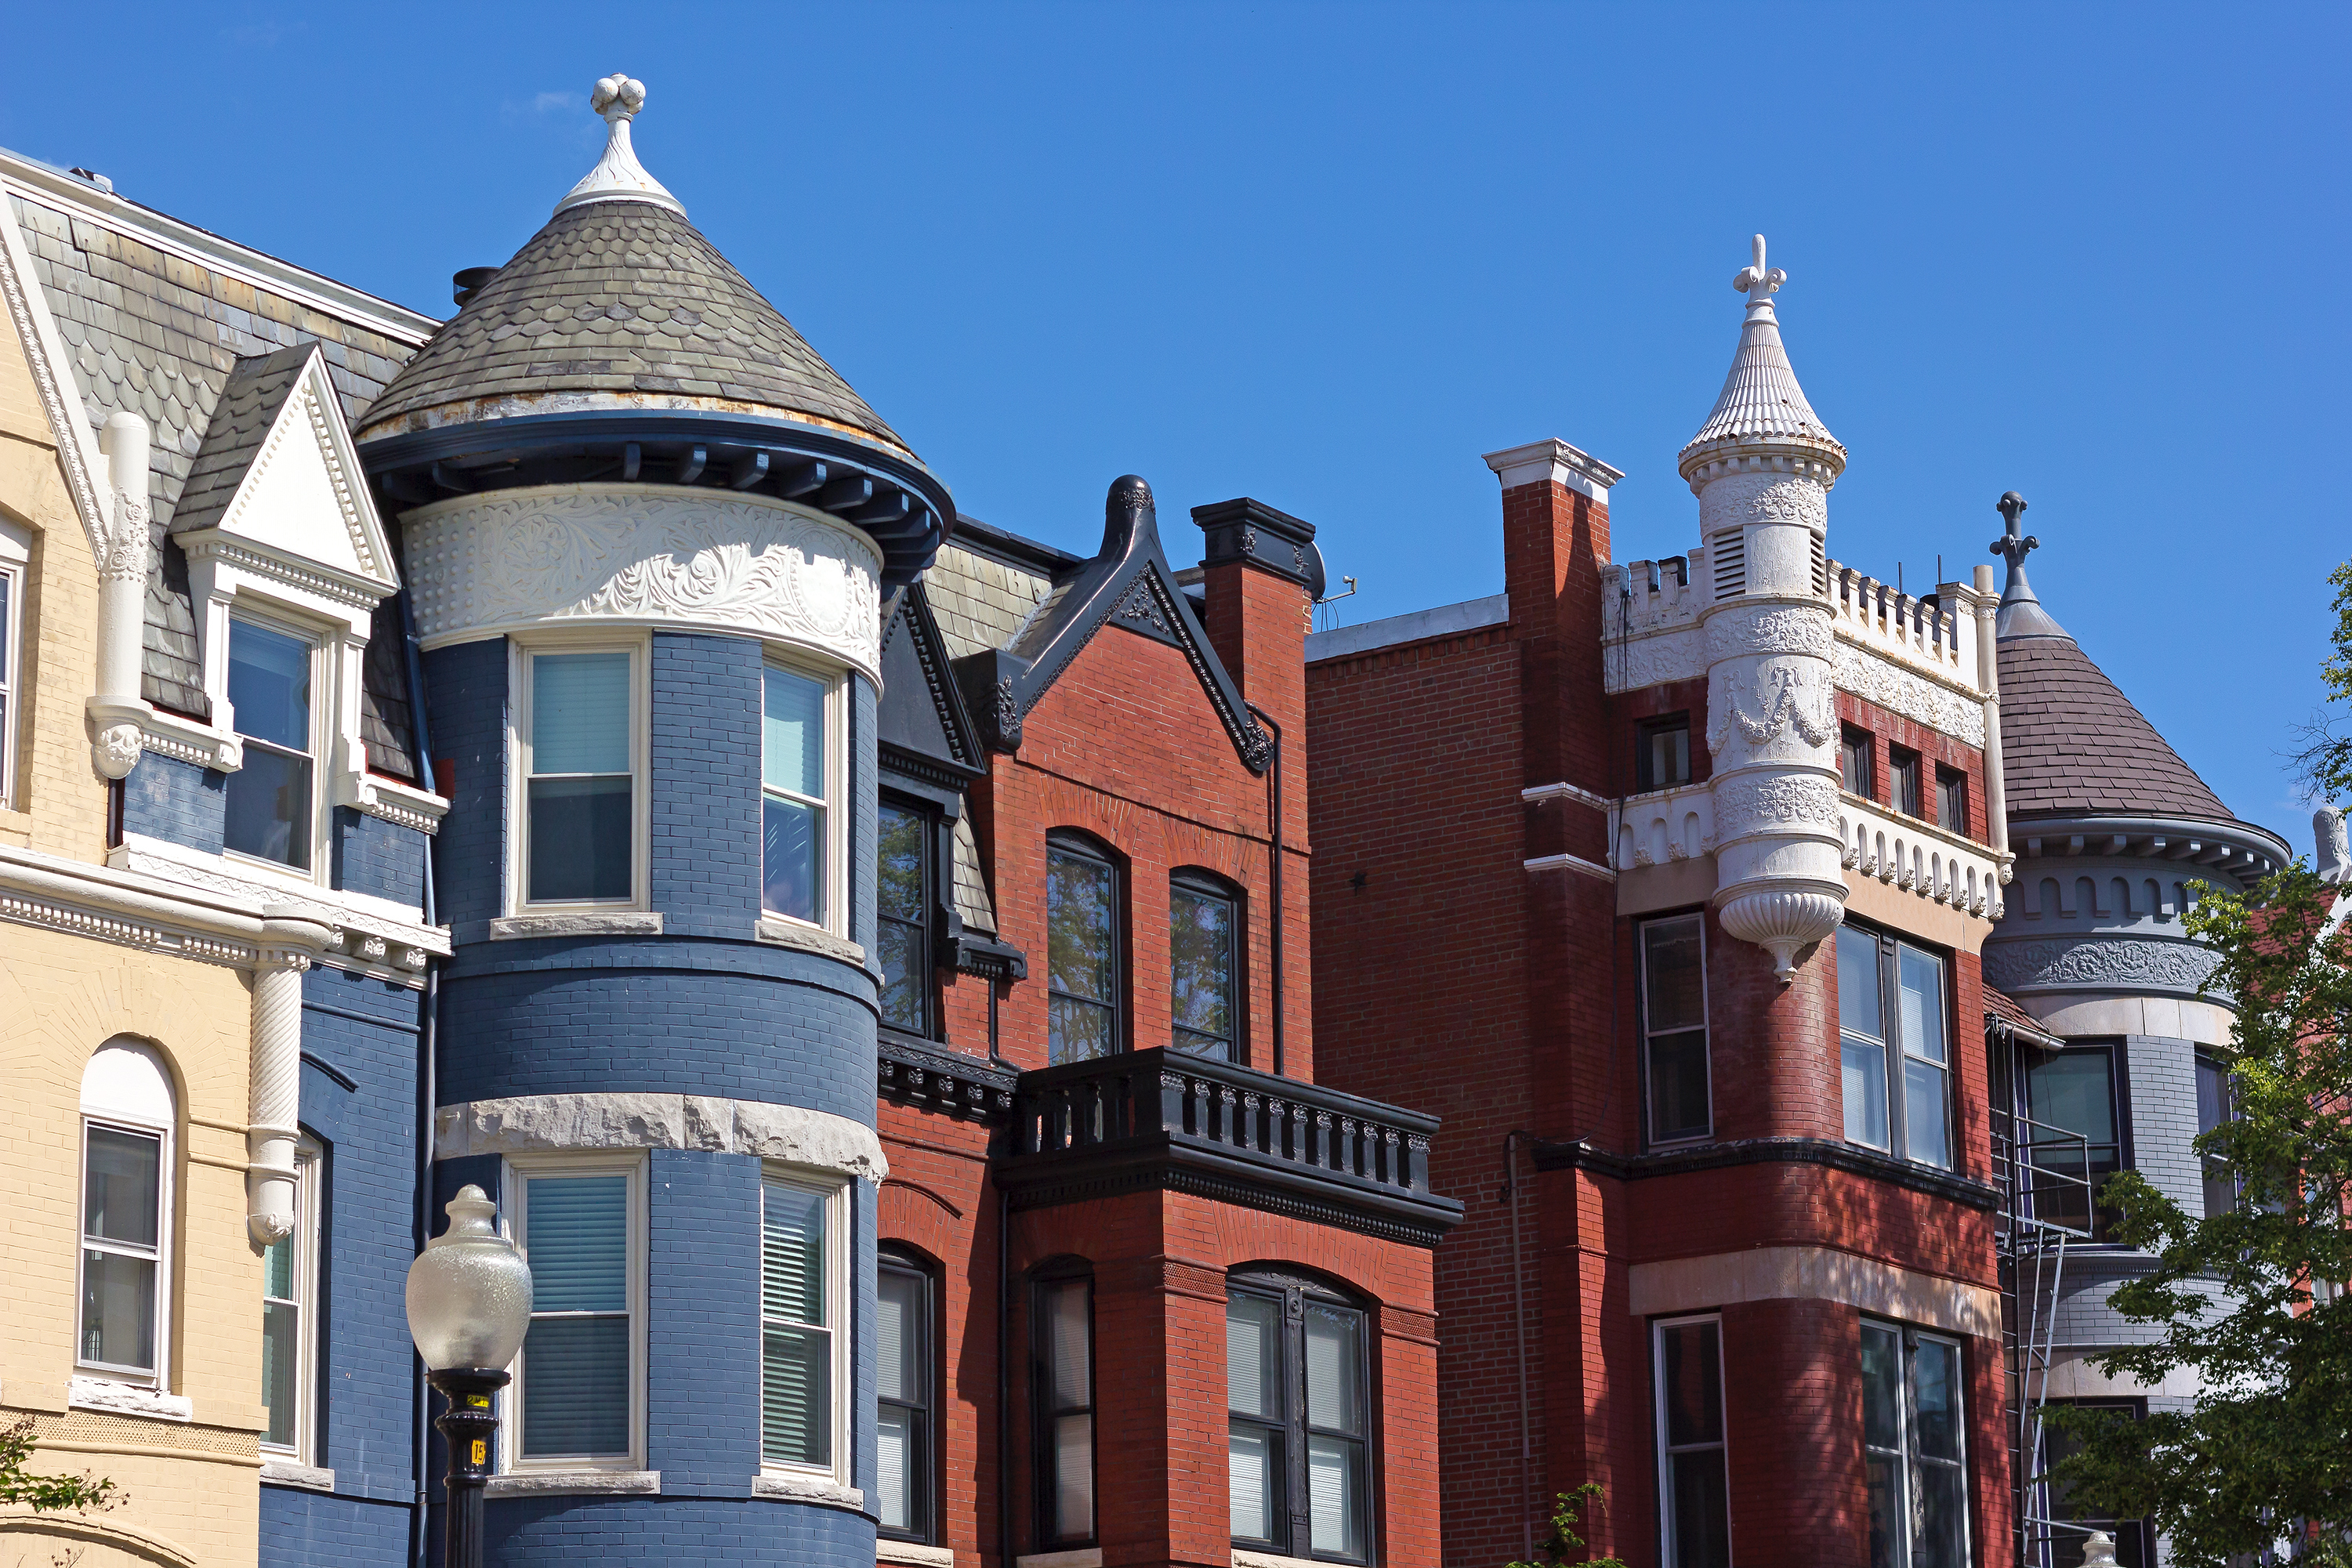 17th Street Festival unfolds in Dupont Circle this Saturday